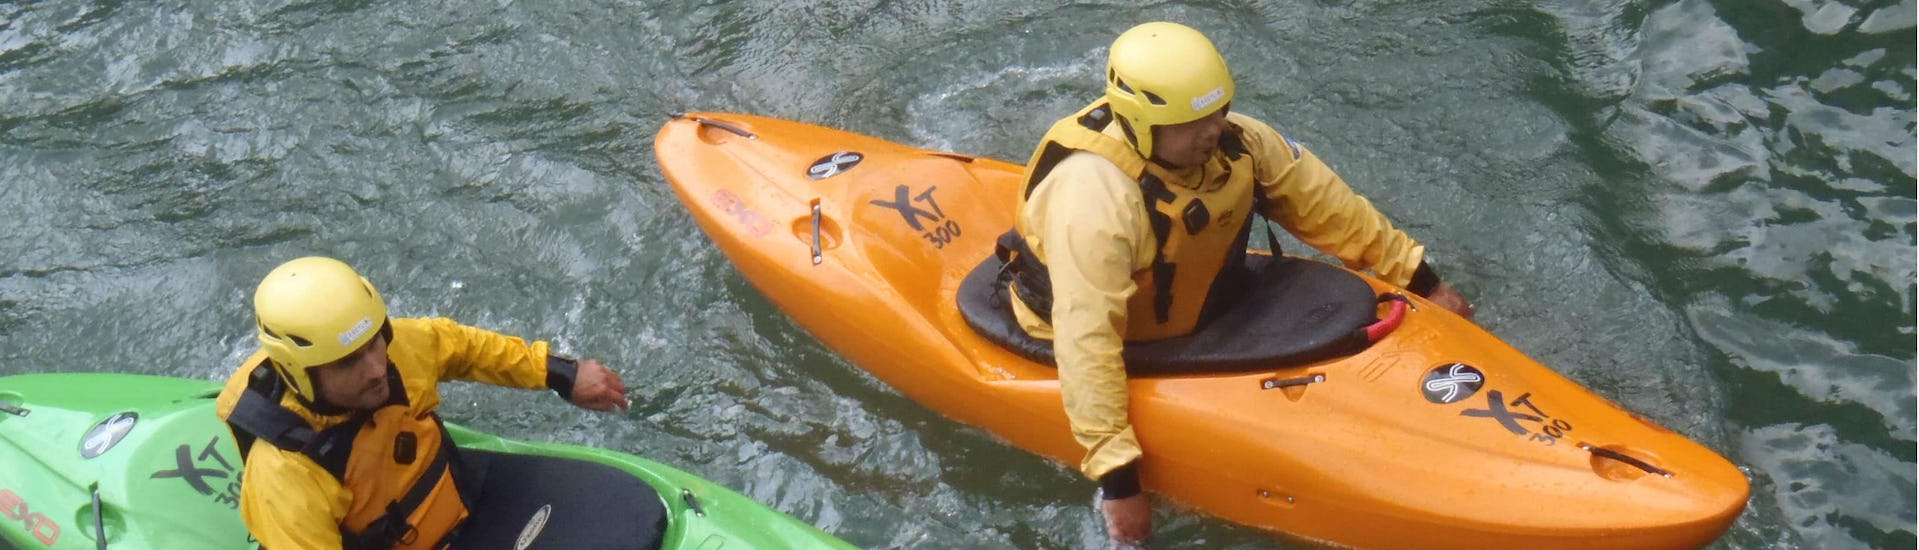 kayak-instructor-private-all-levels-eddyline-hero